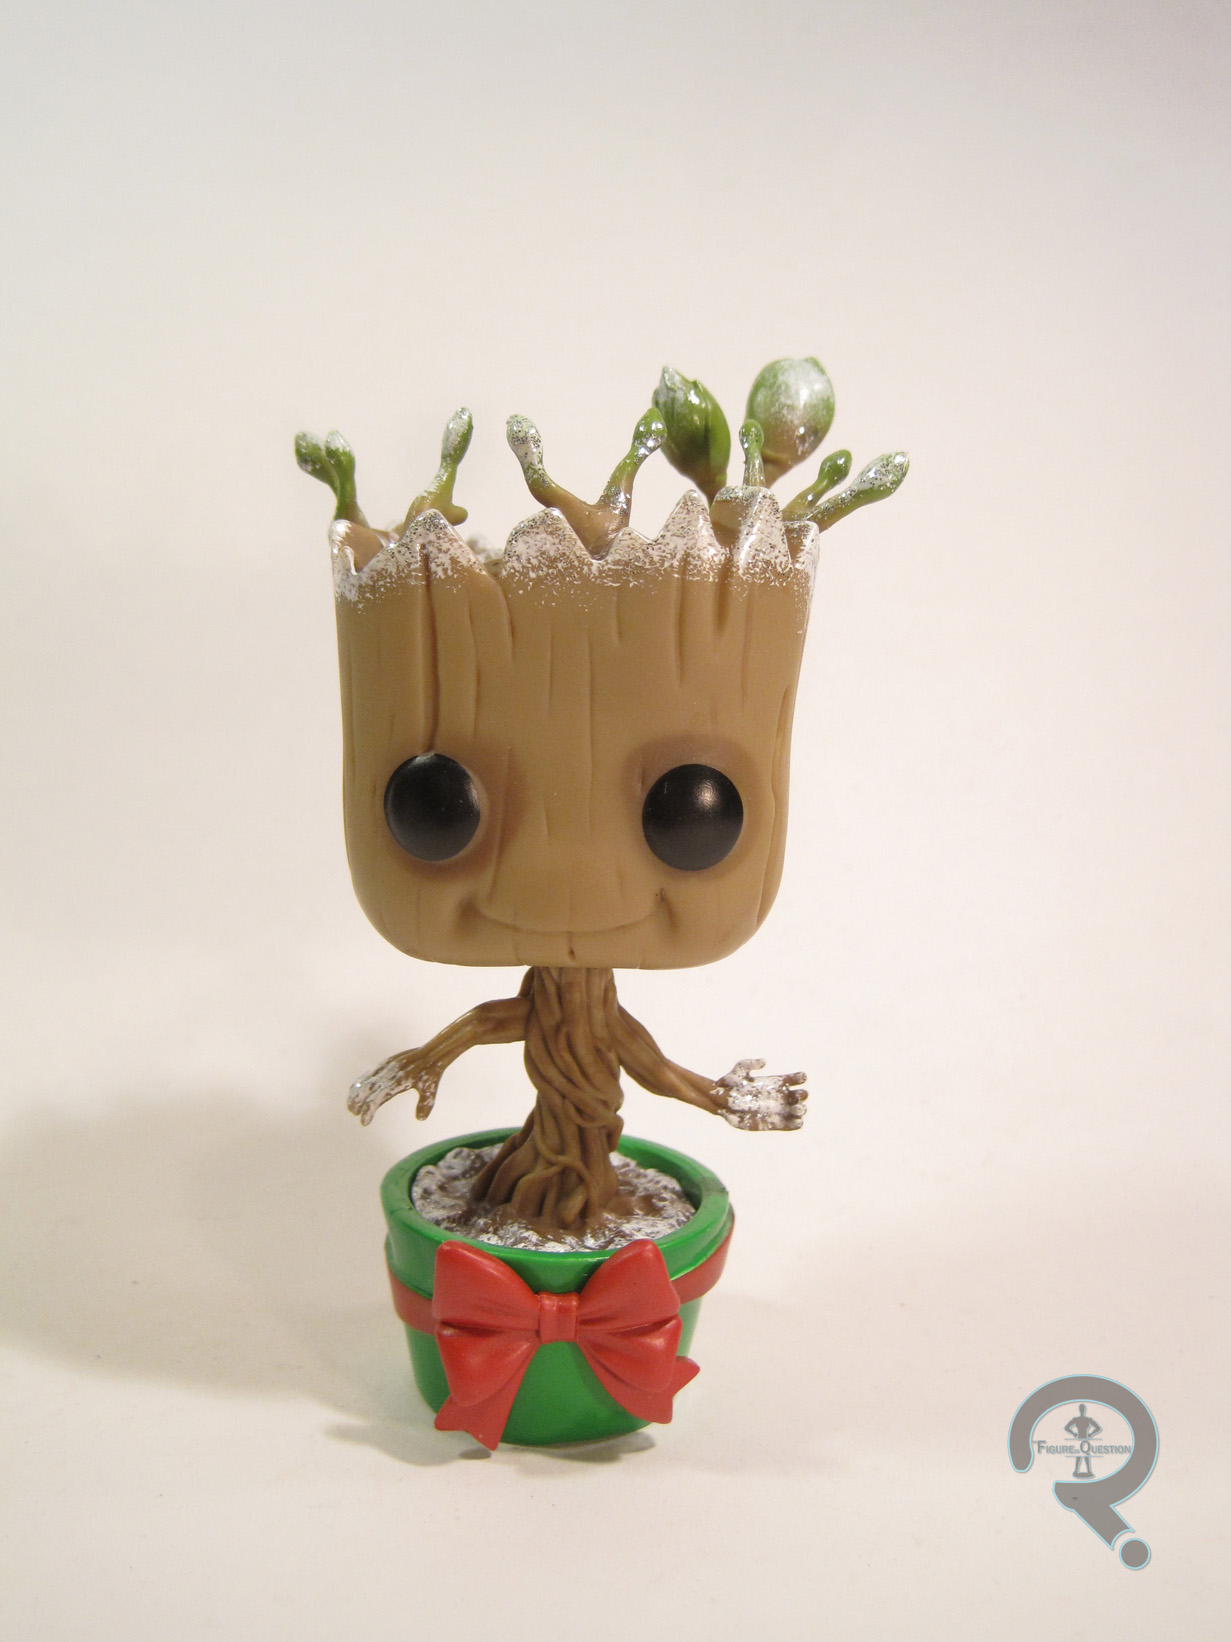 Christmas Groot Funko Pop.0804 Holiday Dancing Groot The Figure In Question